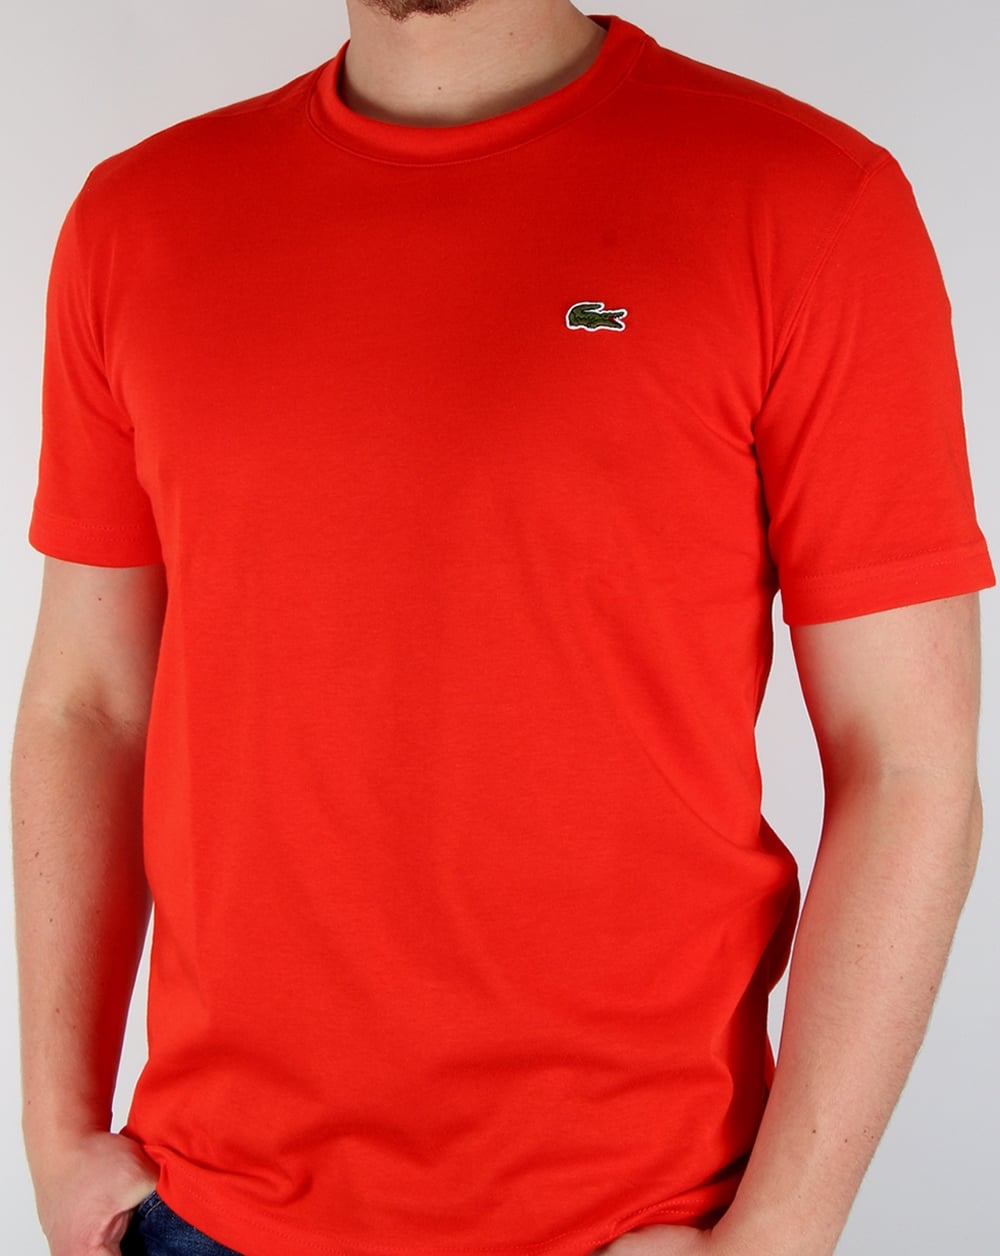 Lacoste Crew Neck T Shirt Corrida Red Tee Crew Neck Sport Mens